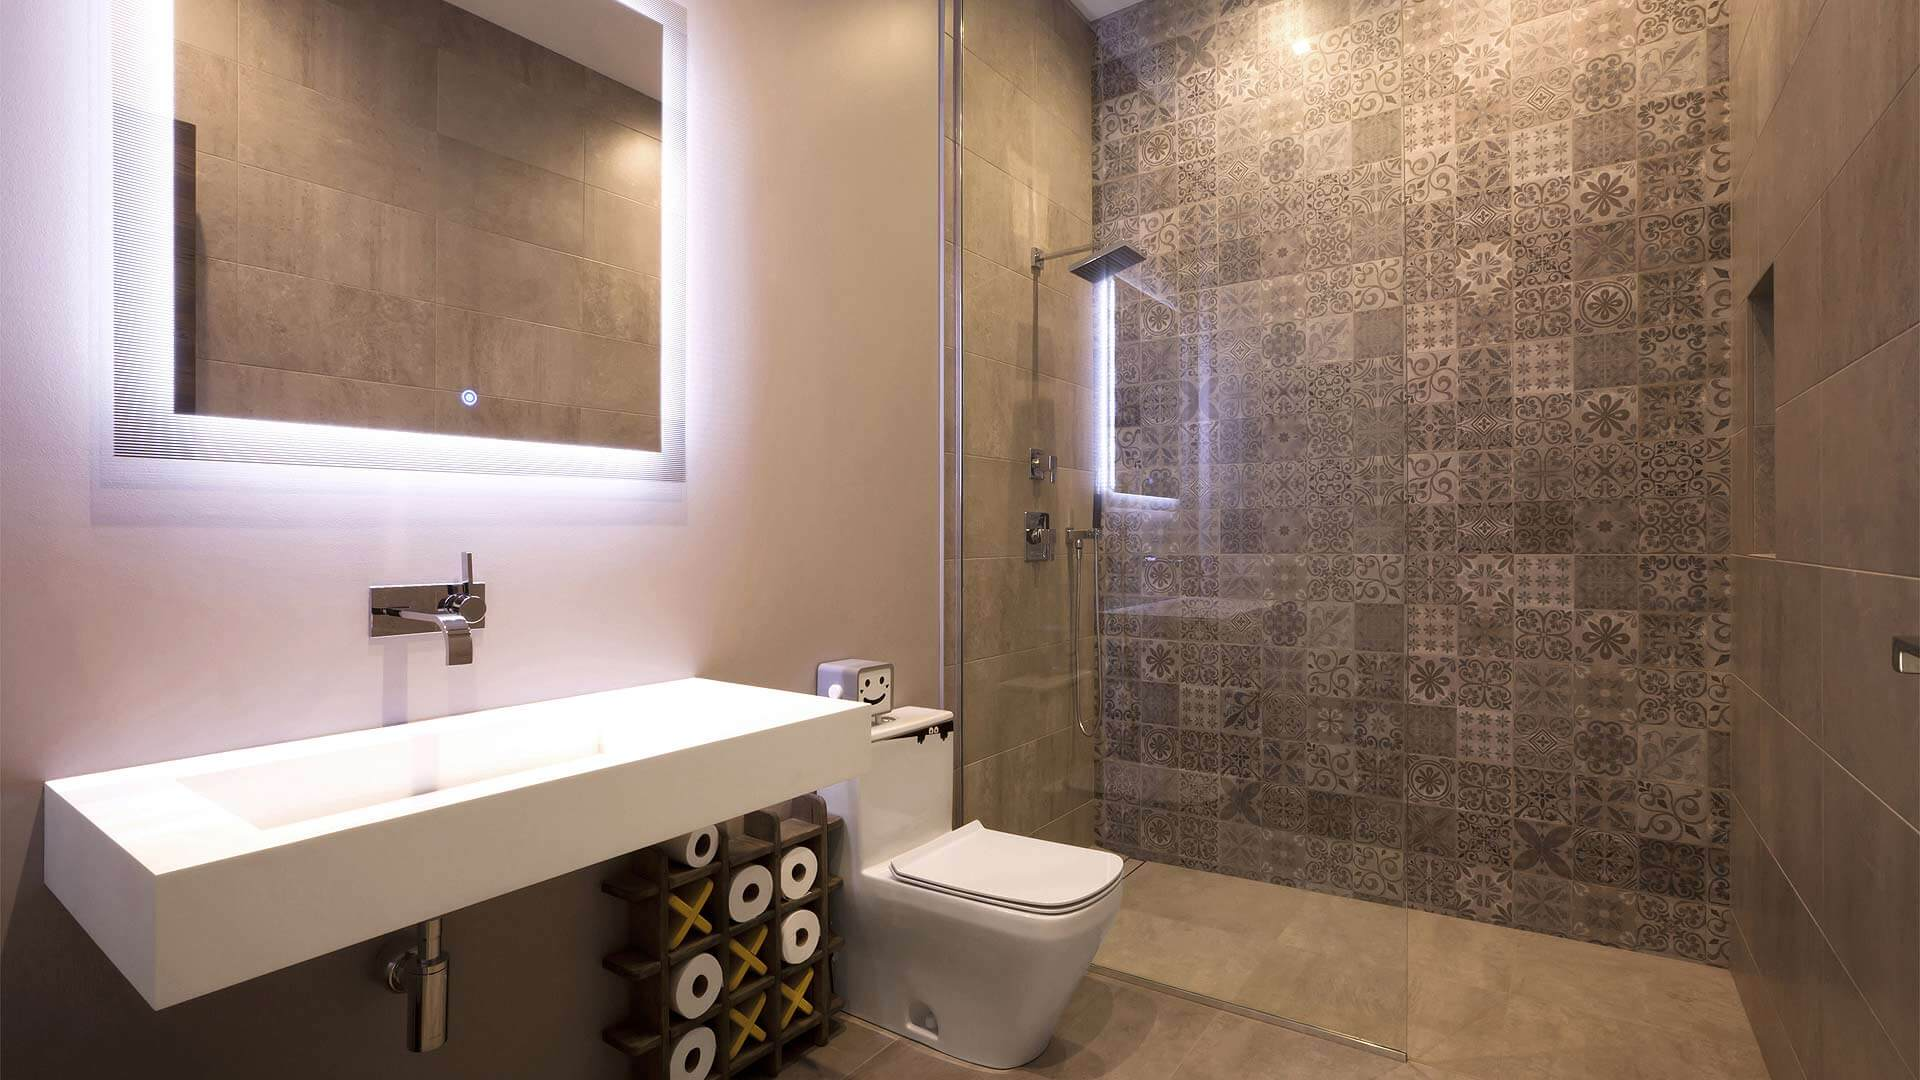 Upstairs Bathroom with full-height shower glass partition, wall tile from Turkey, and integrally-lighted vanity mirror - Minimalist Modern - Indian Head Park - Chicago, Illinois - HAUS   Architecture For Modern Lifestyles, Christopher Short, Indianapolis Architect with Joe Trojanowski